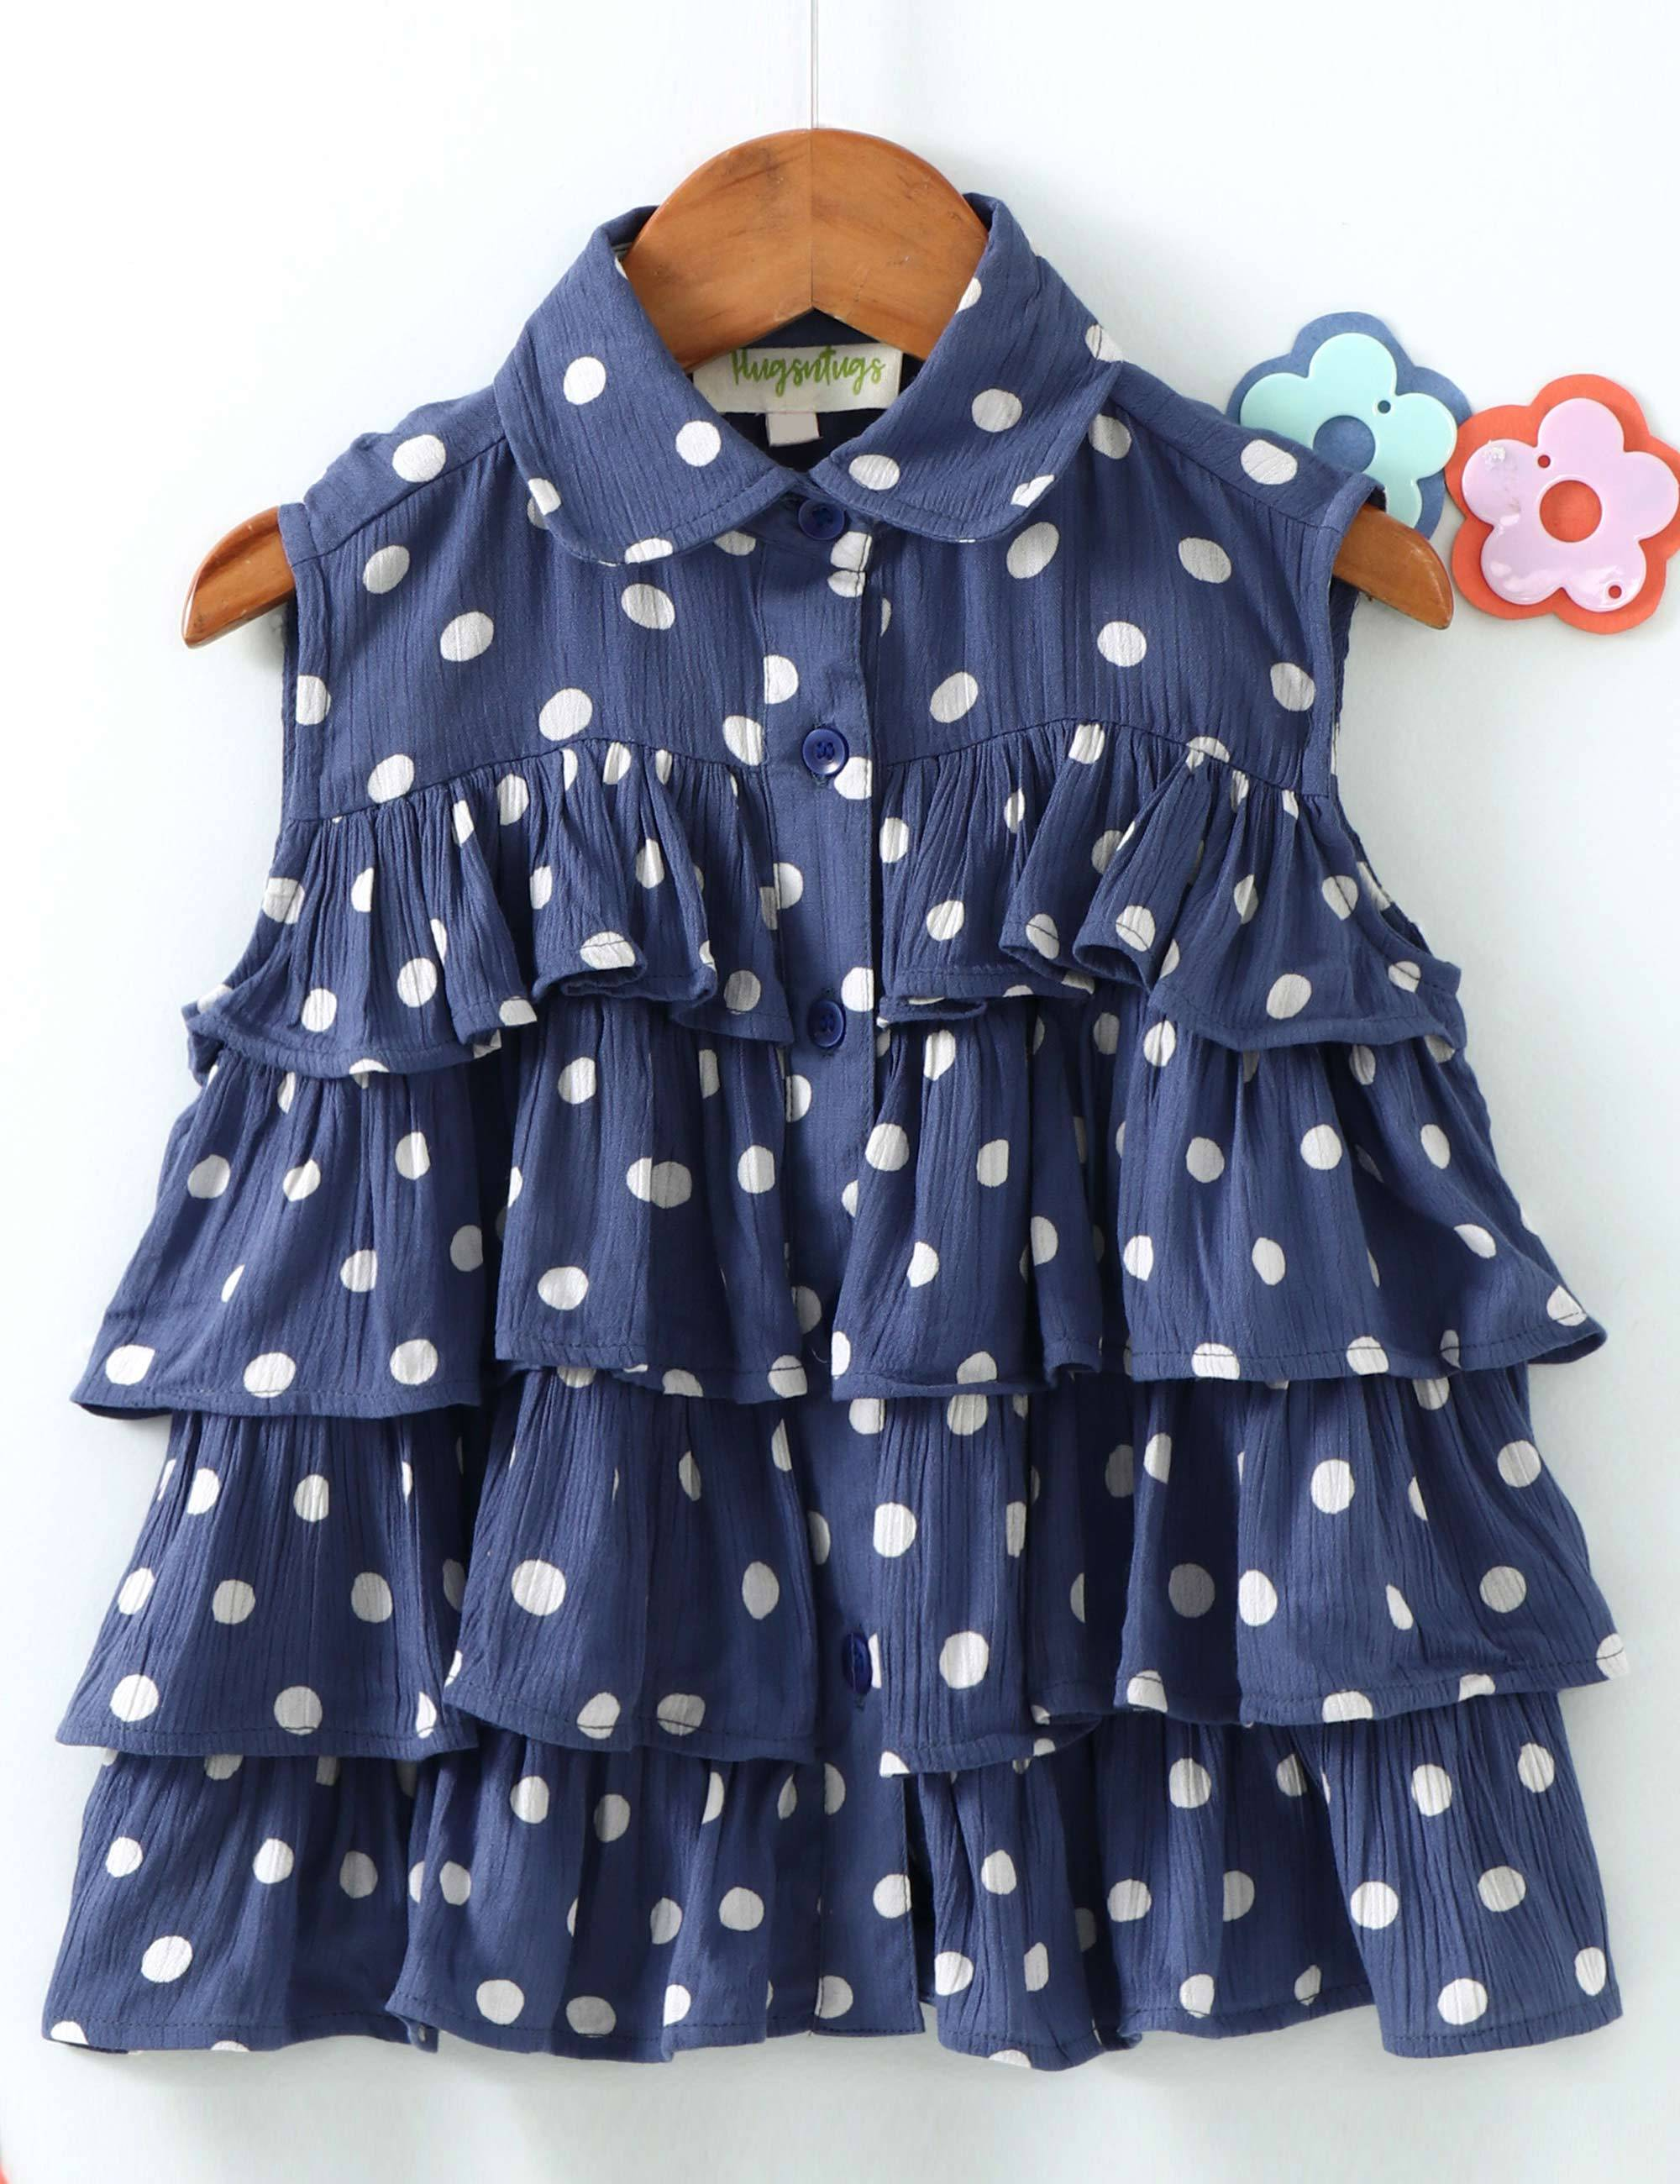 Polka Dots Print Sleeveless Top In Blue Colour.